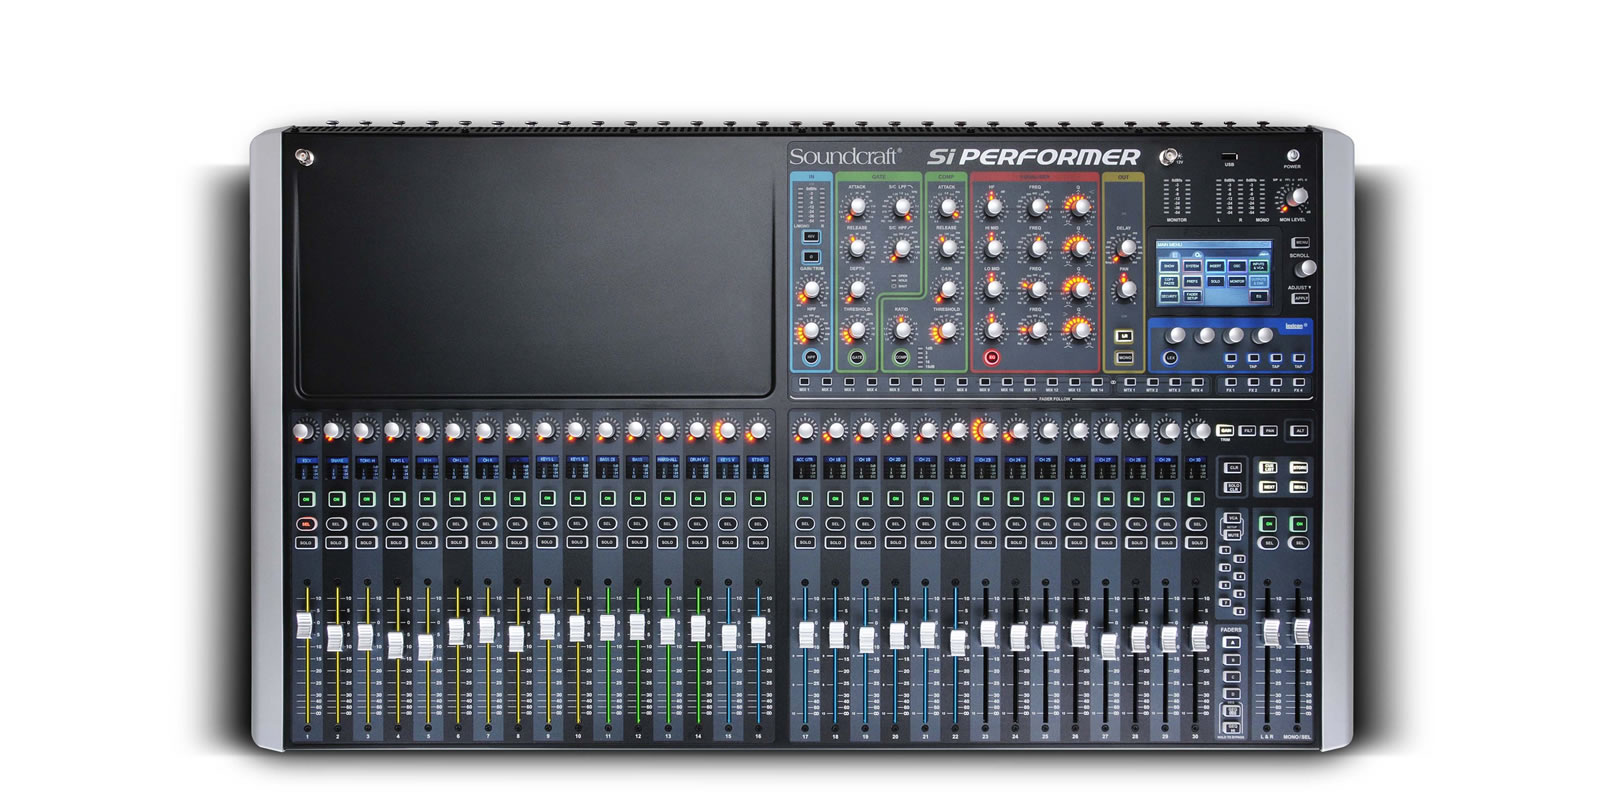 Si Performer 3 | Soundcraft - Professional Audio Mixers